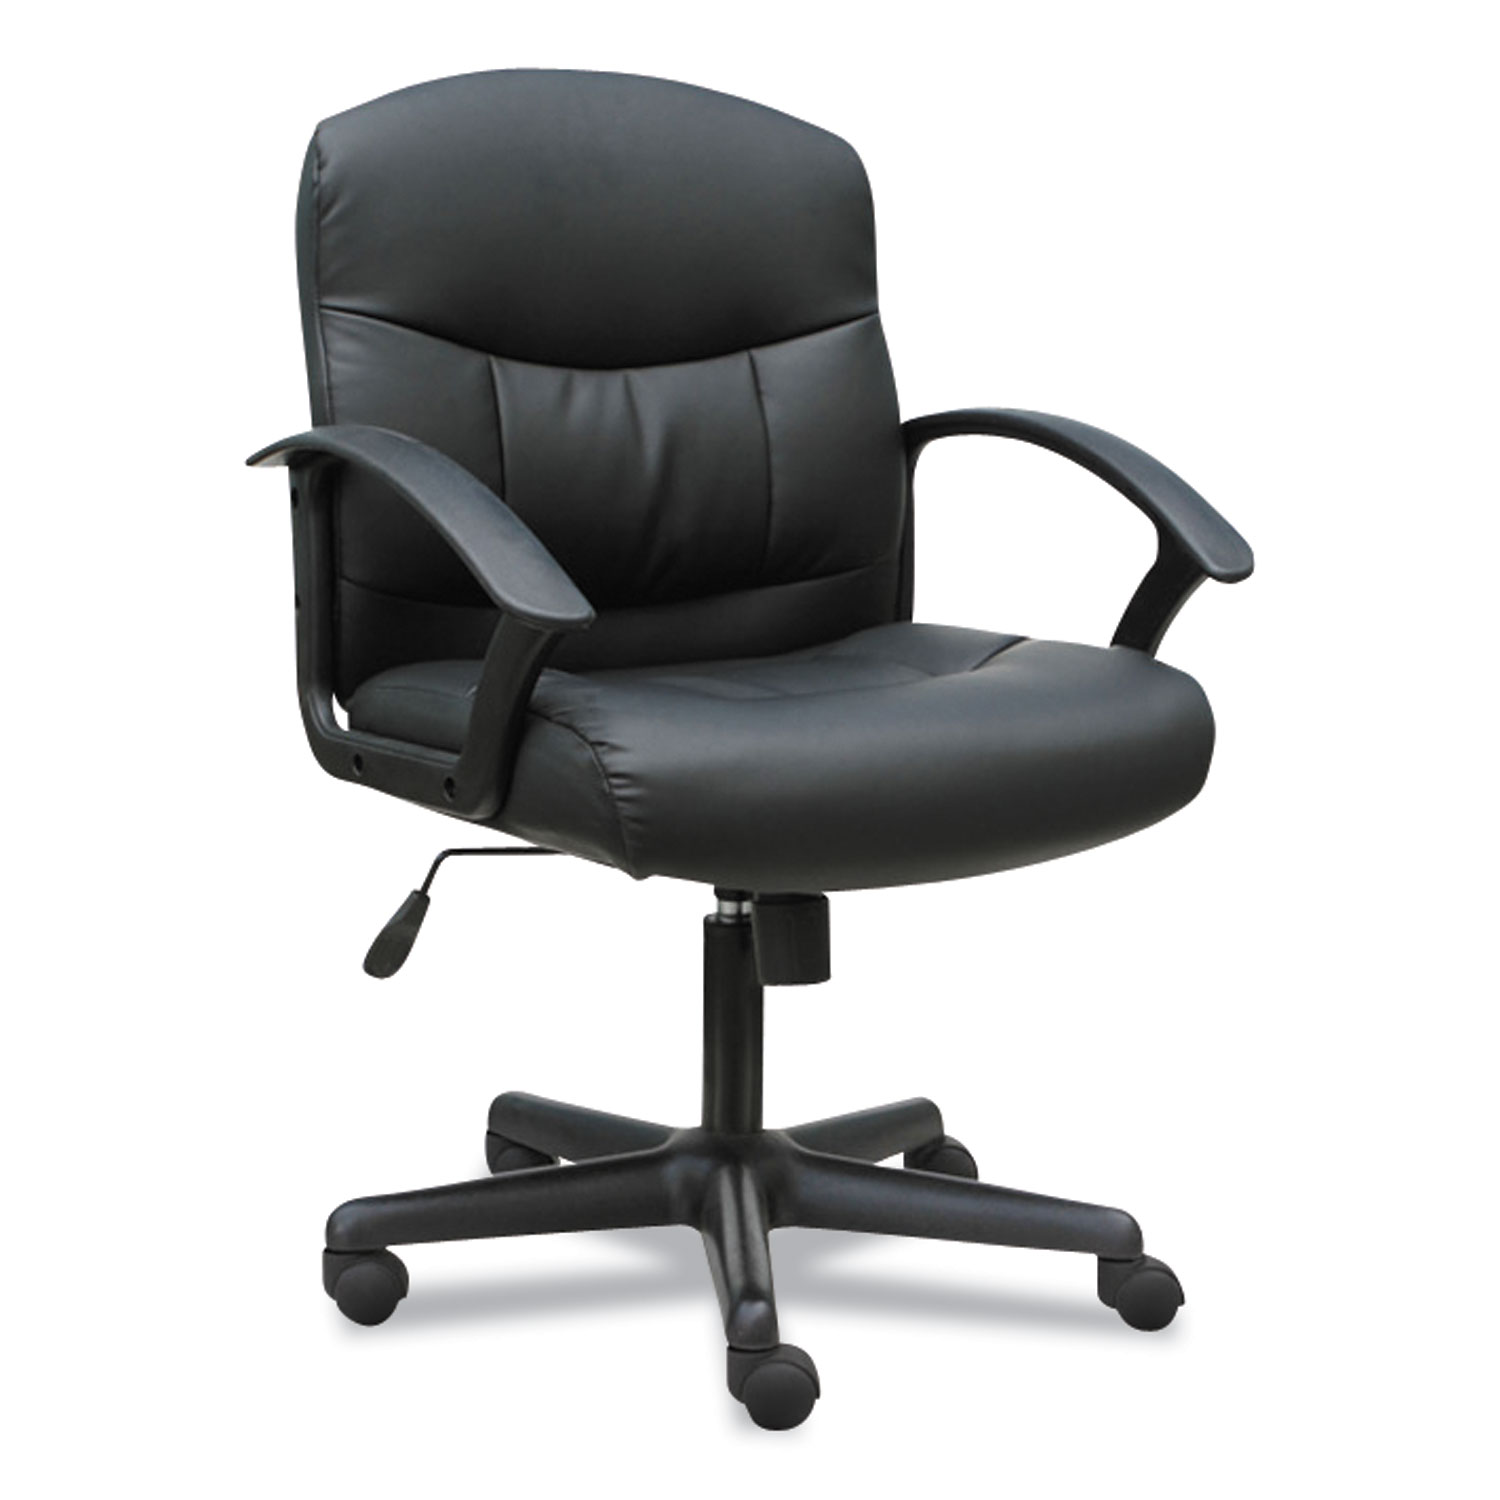 3-Oh-Three Mid-Back Executive Leather Chair, Supports up to 250 lbs., Black Seat/Black Back, Black Base